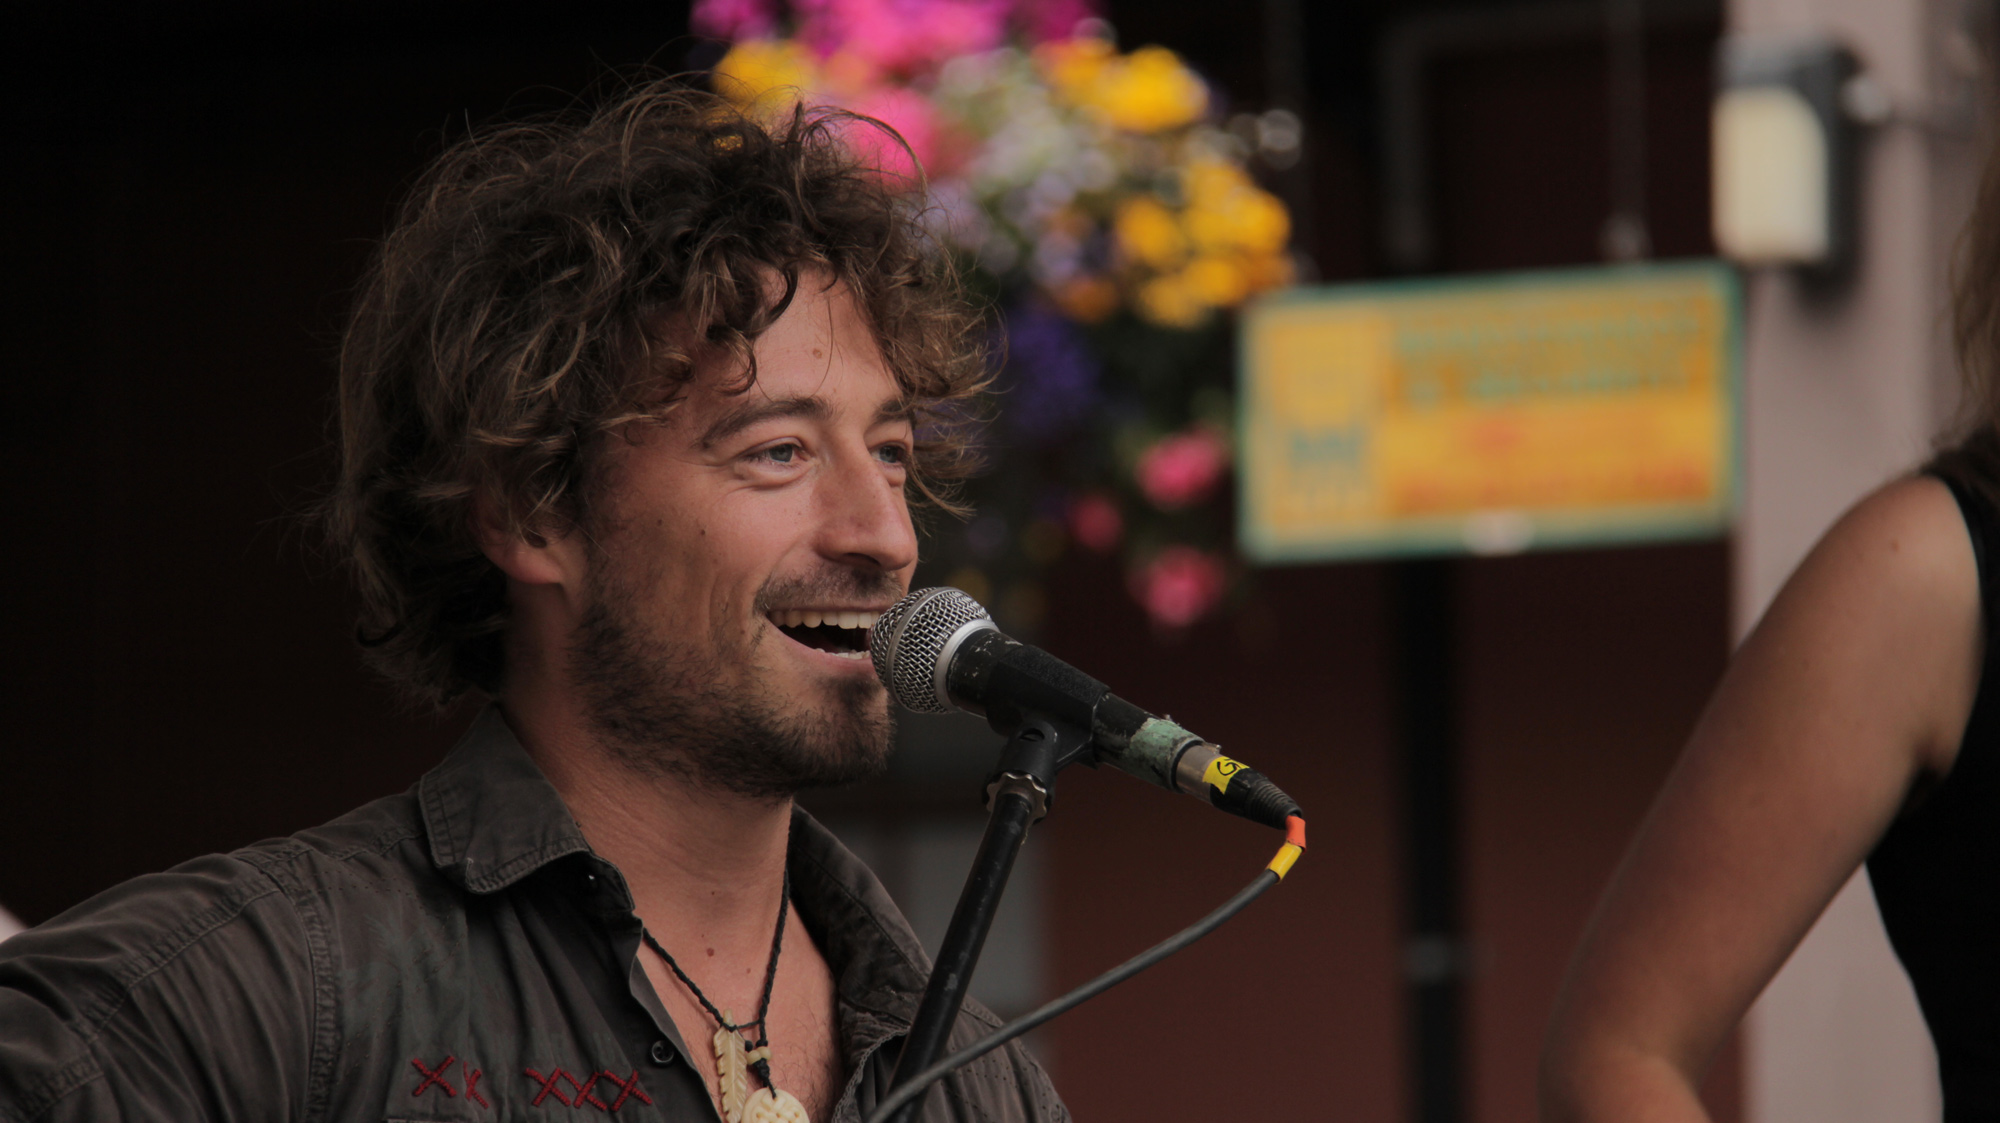 Video Archive- 2012-08-18: Jesse Roper at Market Square's Courtyard Sessions